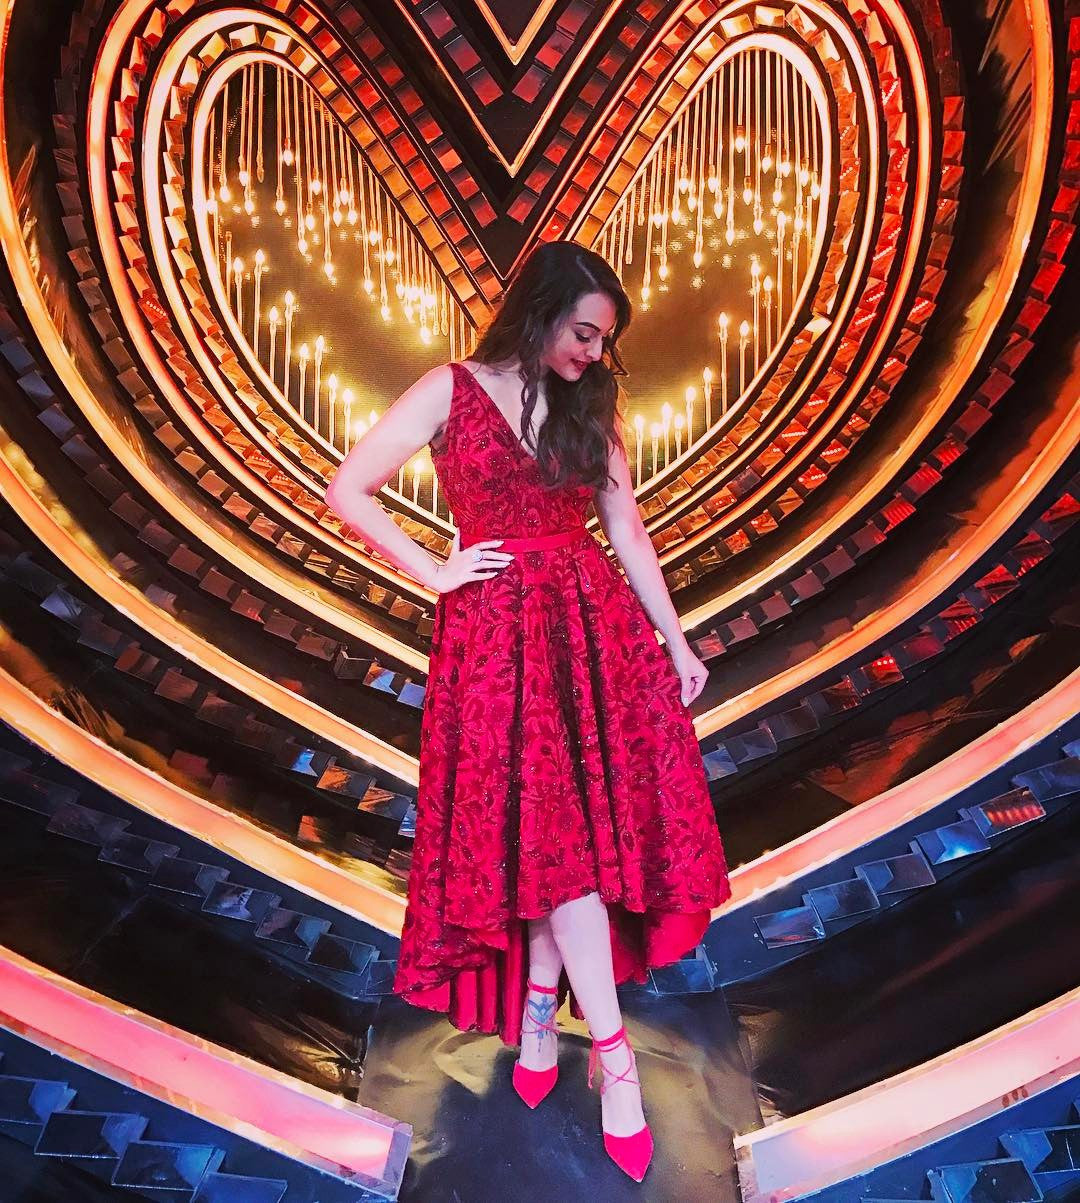 Sonakshi Sinha looks drop dead gorgeous in an embroidered red gown by Rajat Tangri at Nach Baliye Set